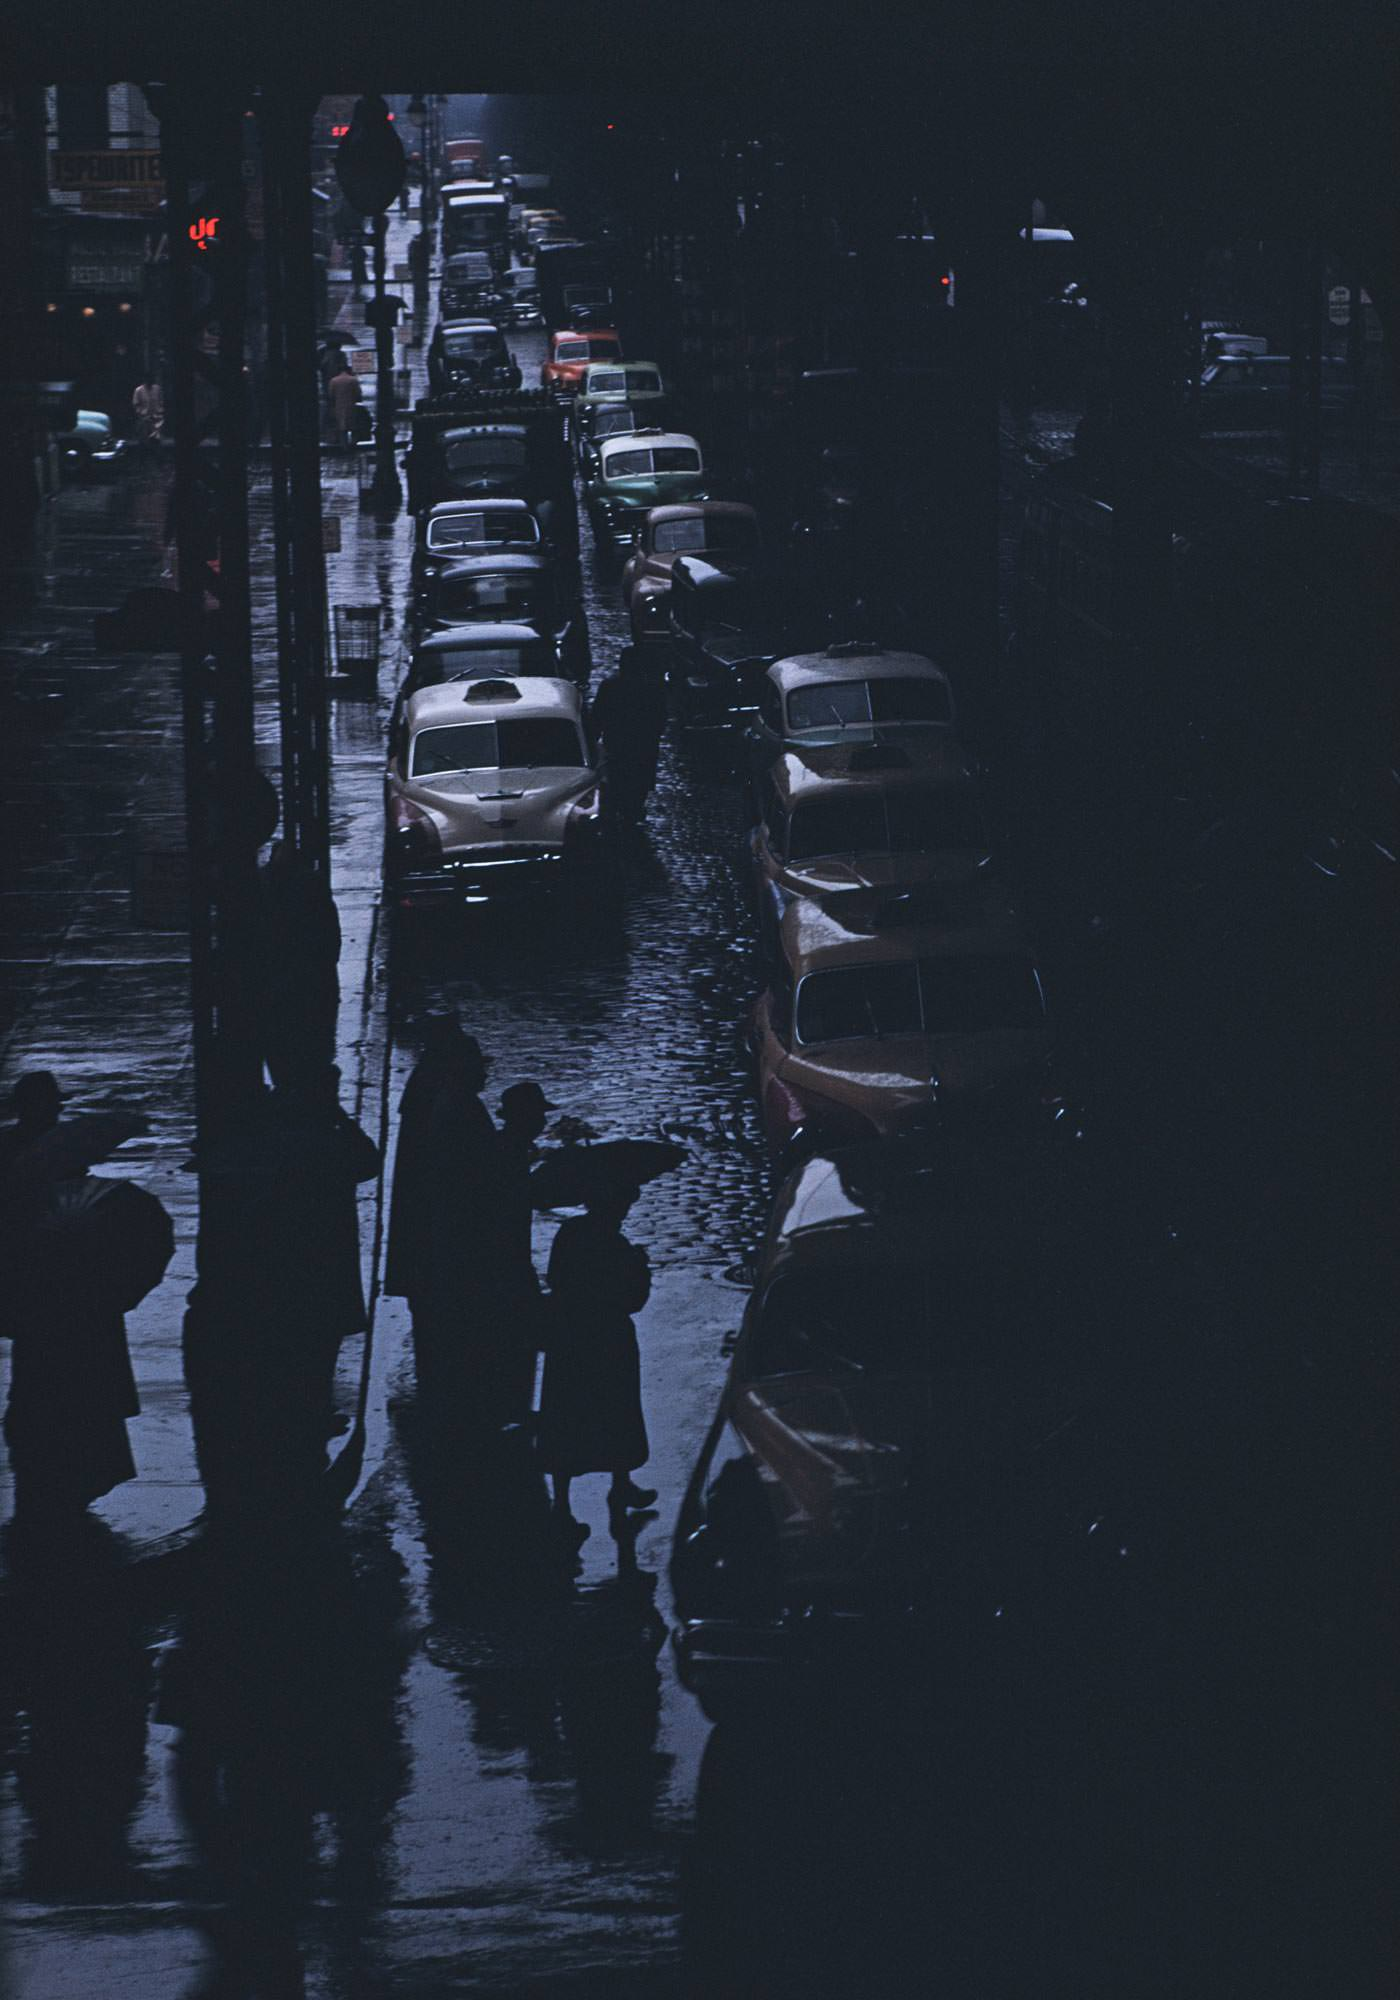 Ernst Haas Photographie, New York City, USA, 1952